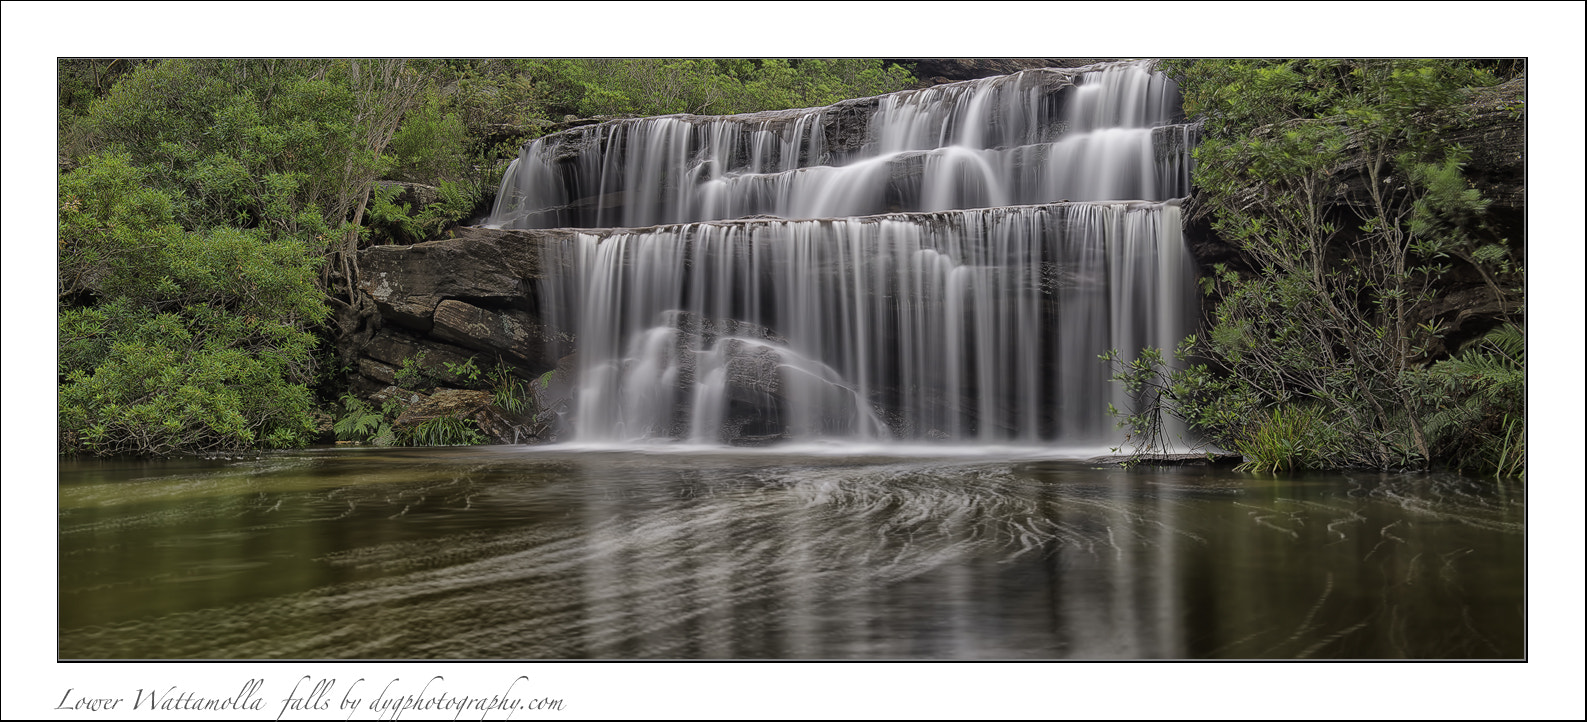 Photograph Lower Wattamolla falls by donald Goldney on 500px